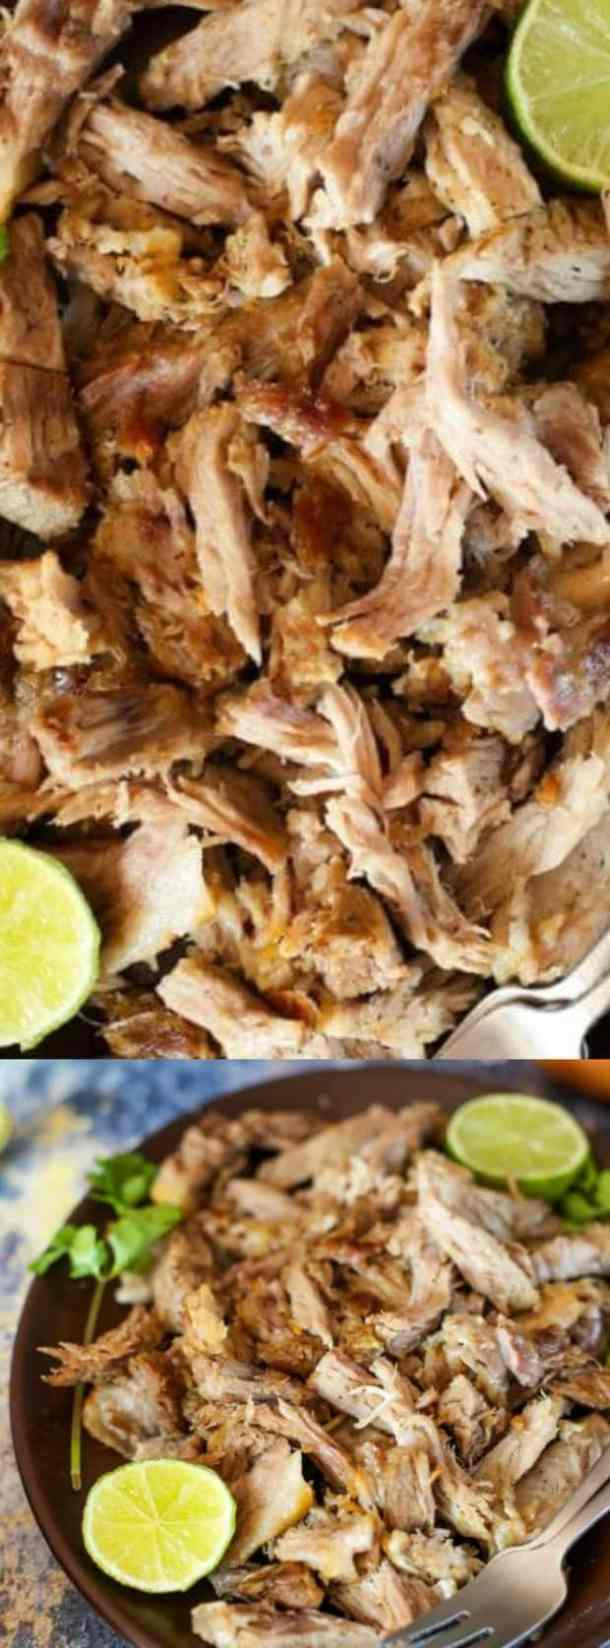 Puerto Rican Instant Pot Pulled Pork